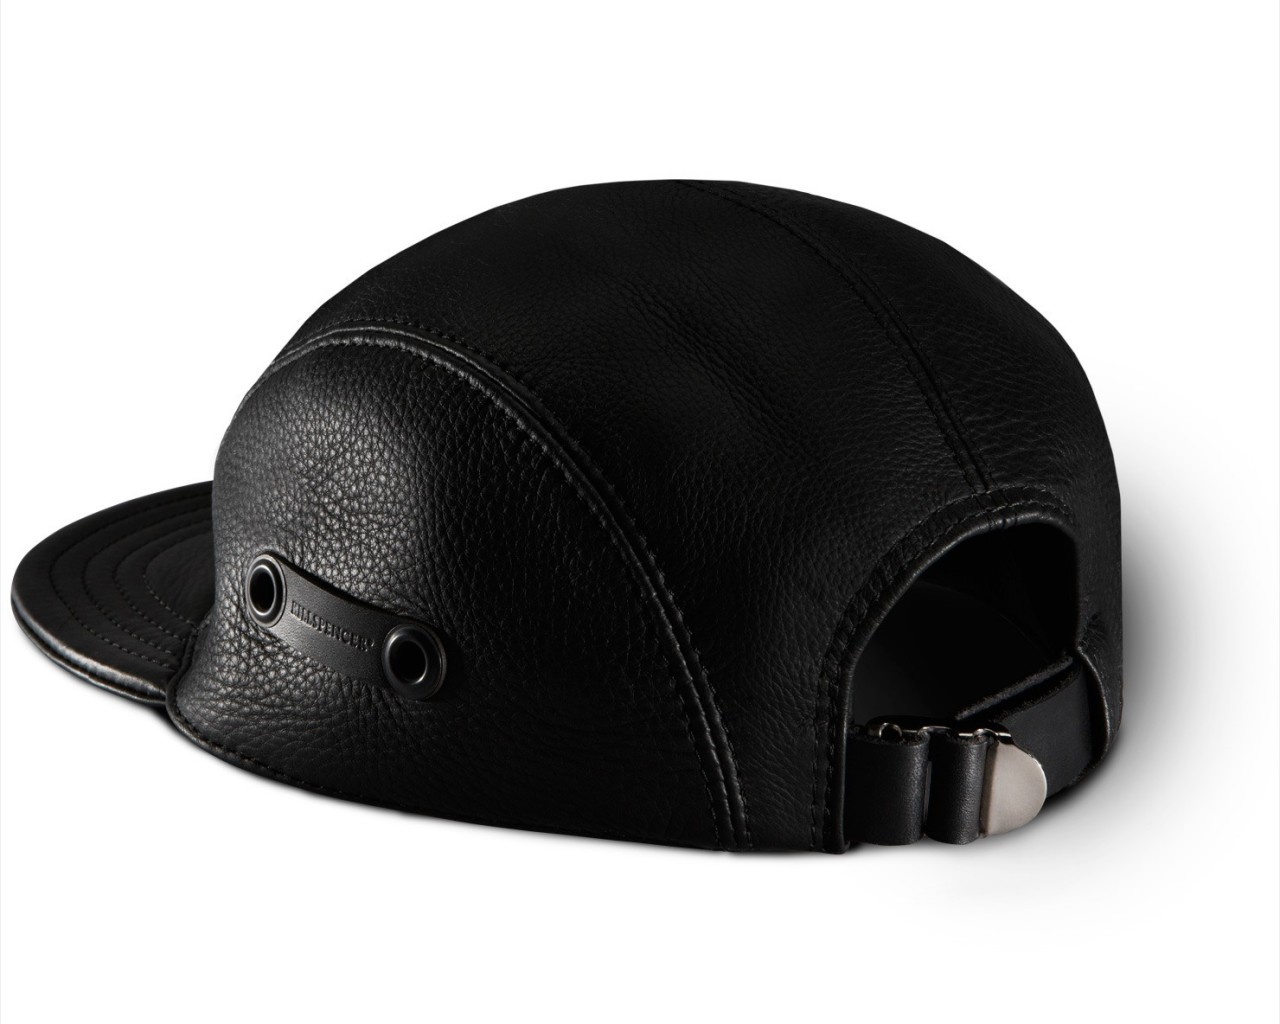 leather_baseball_hat_back-strapback-five panel-campcap-5panel